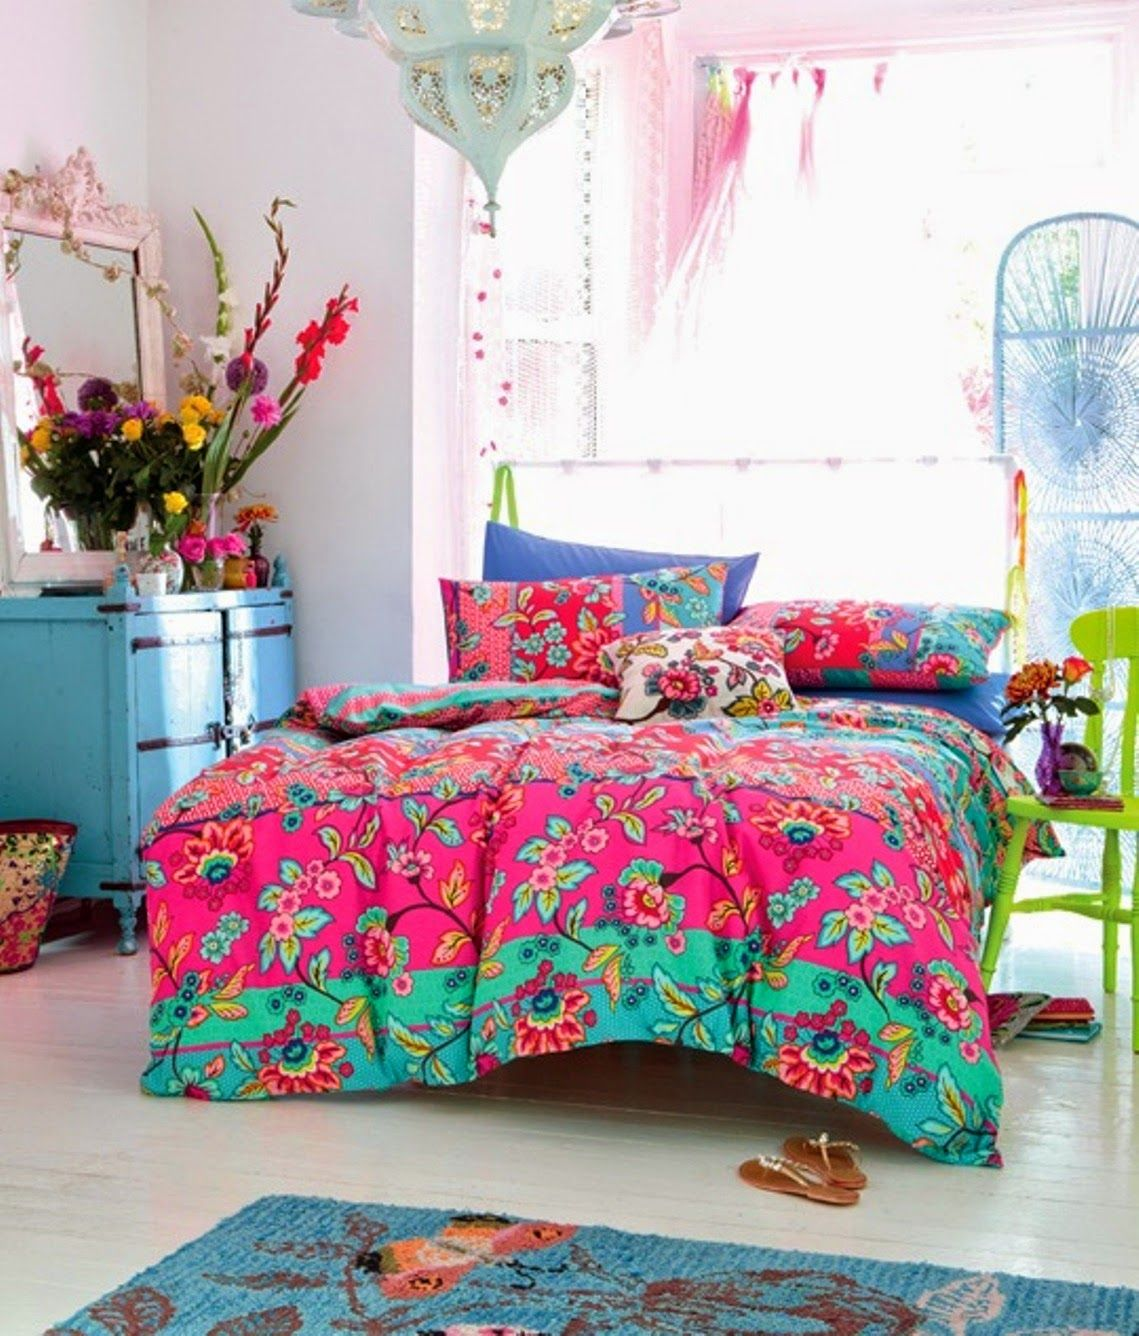 Colorful flower bedding - Bedroom Ideas